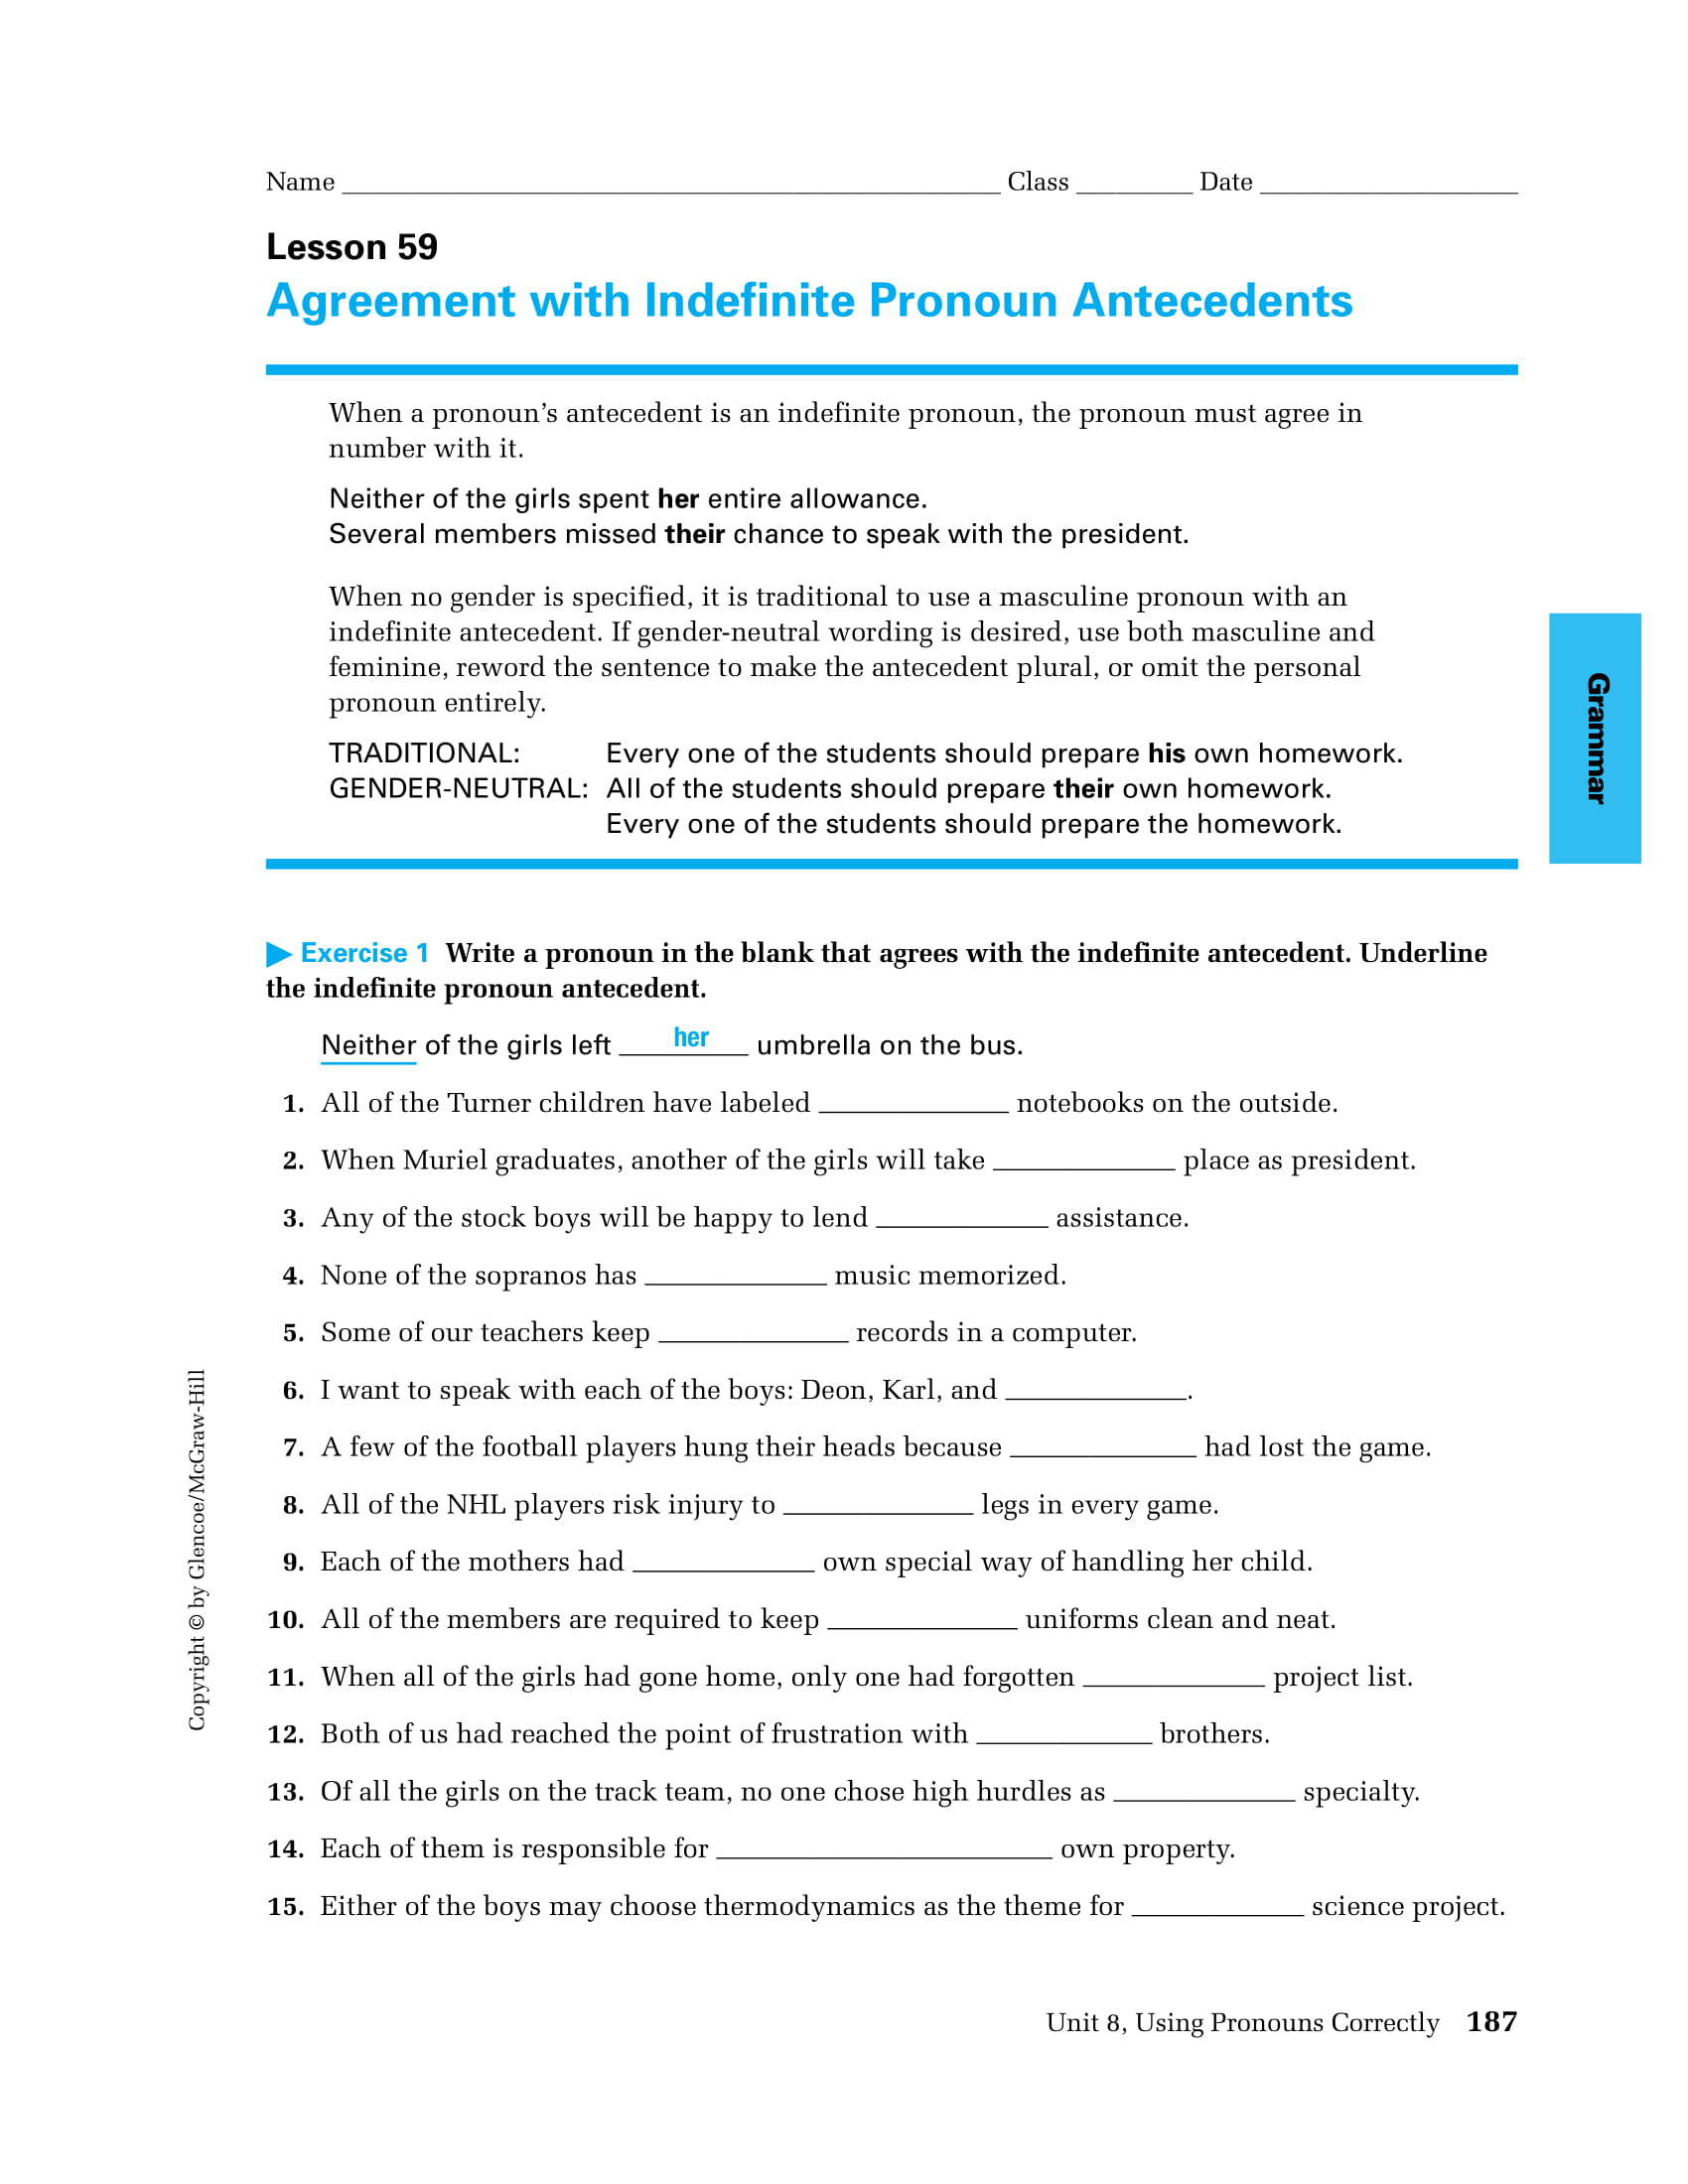 Pronoun Indefinite Antecedent Agreement Worksheet Example